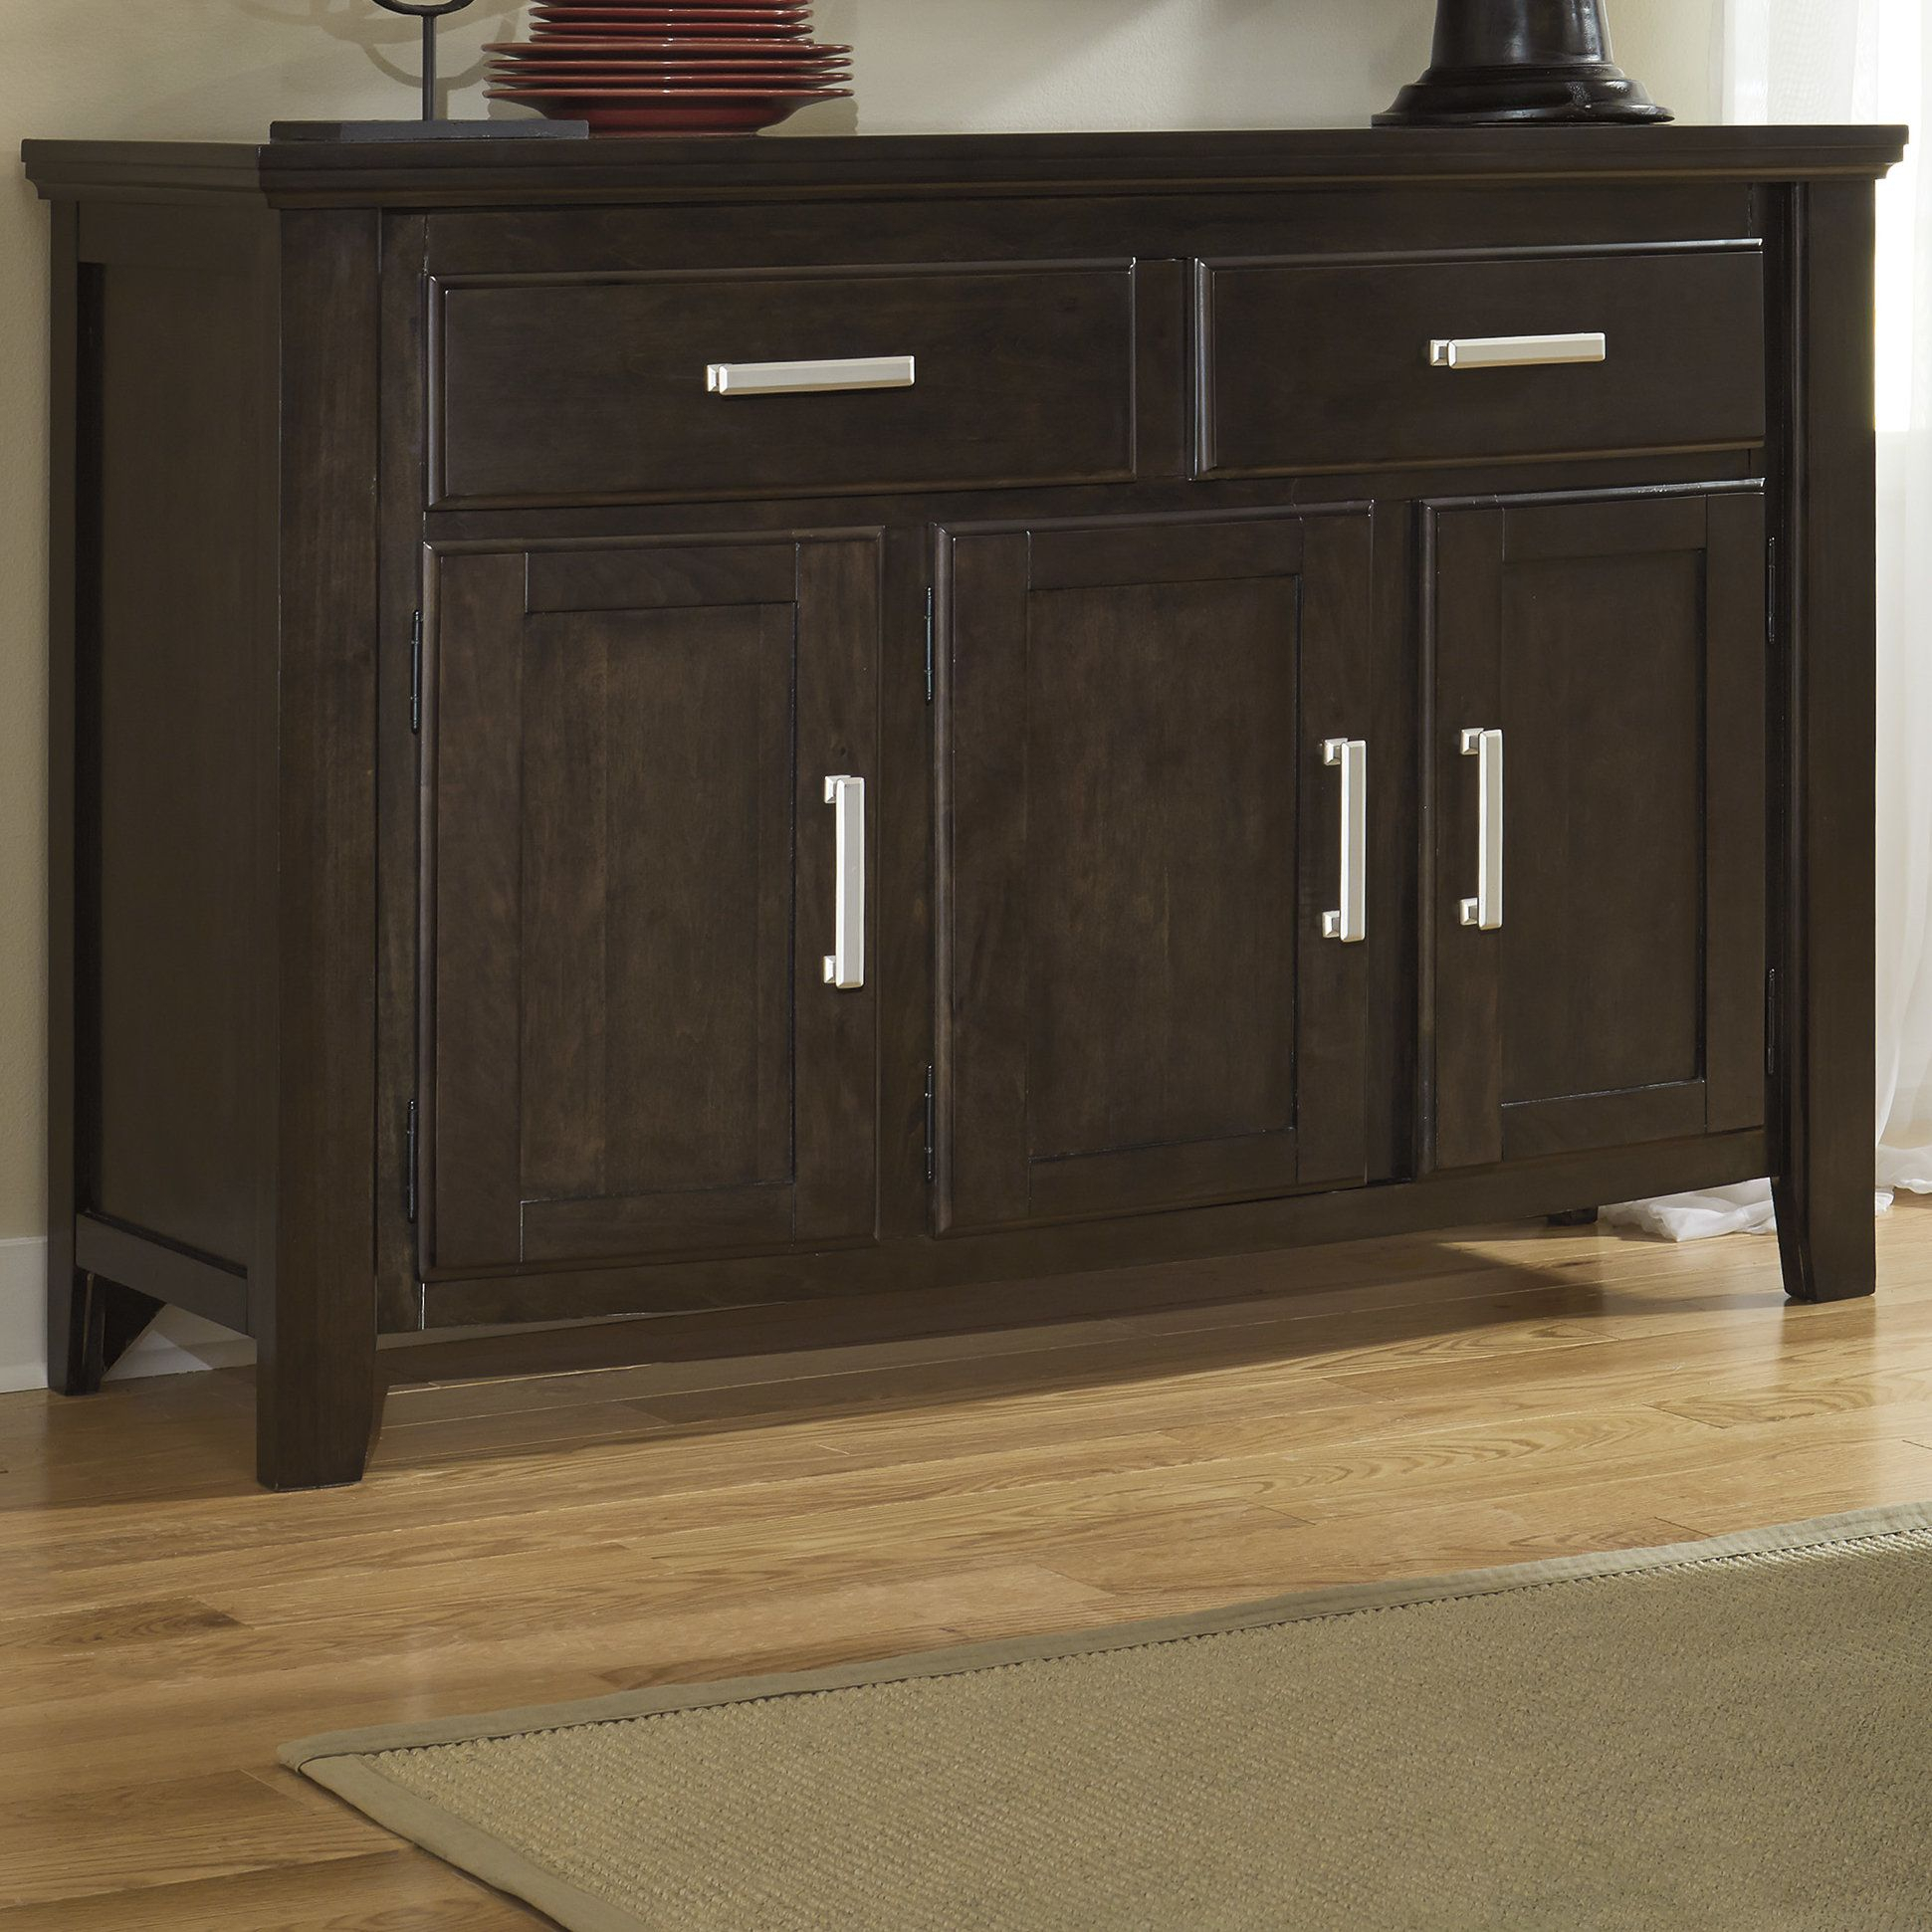 Crawfordsville Sideboard | Products | Dining Room Sideboard Inside Most Current Saint Gratien Sideboards (View 3 of 20)